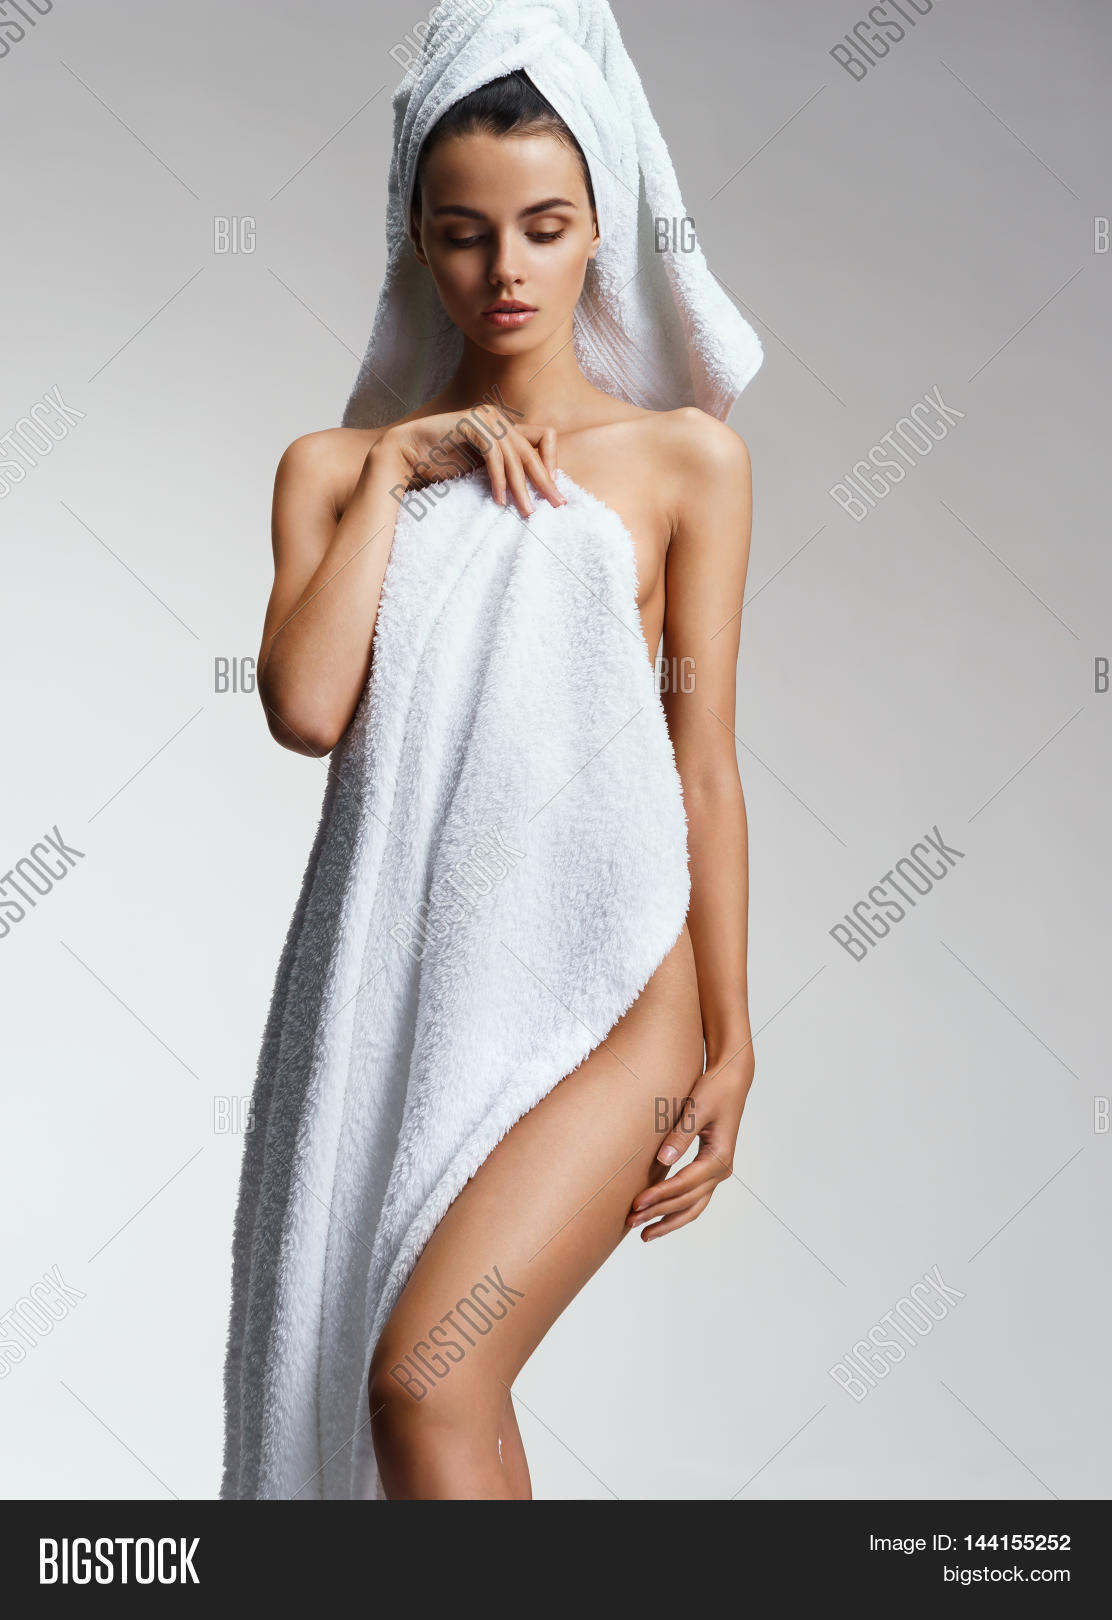 Sexy Woman Towel After Bath Image  Photo  Bigstock-7459